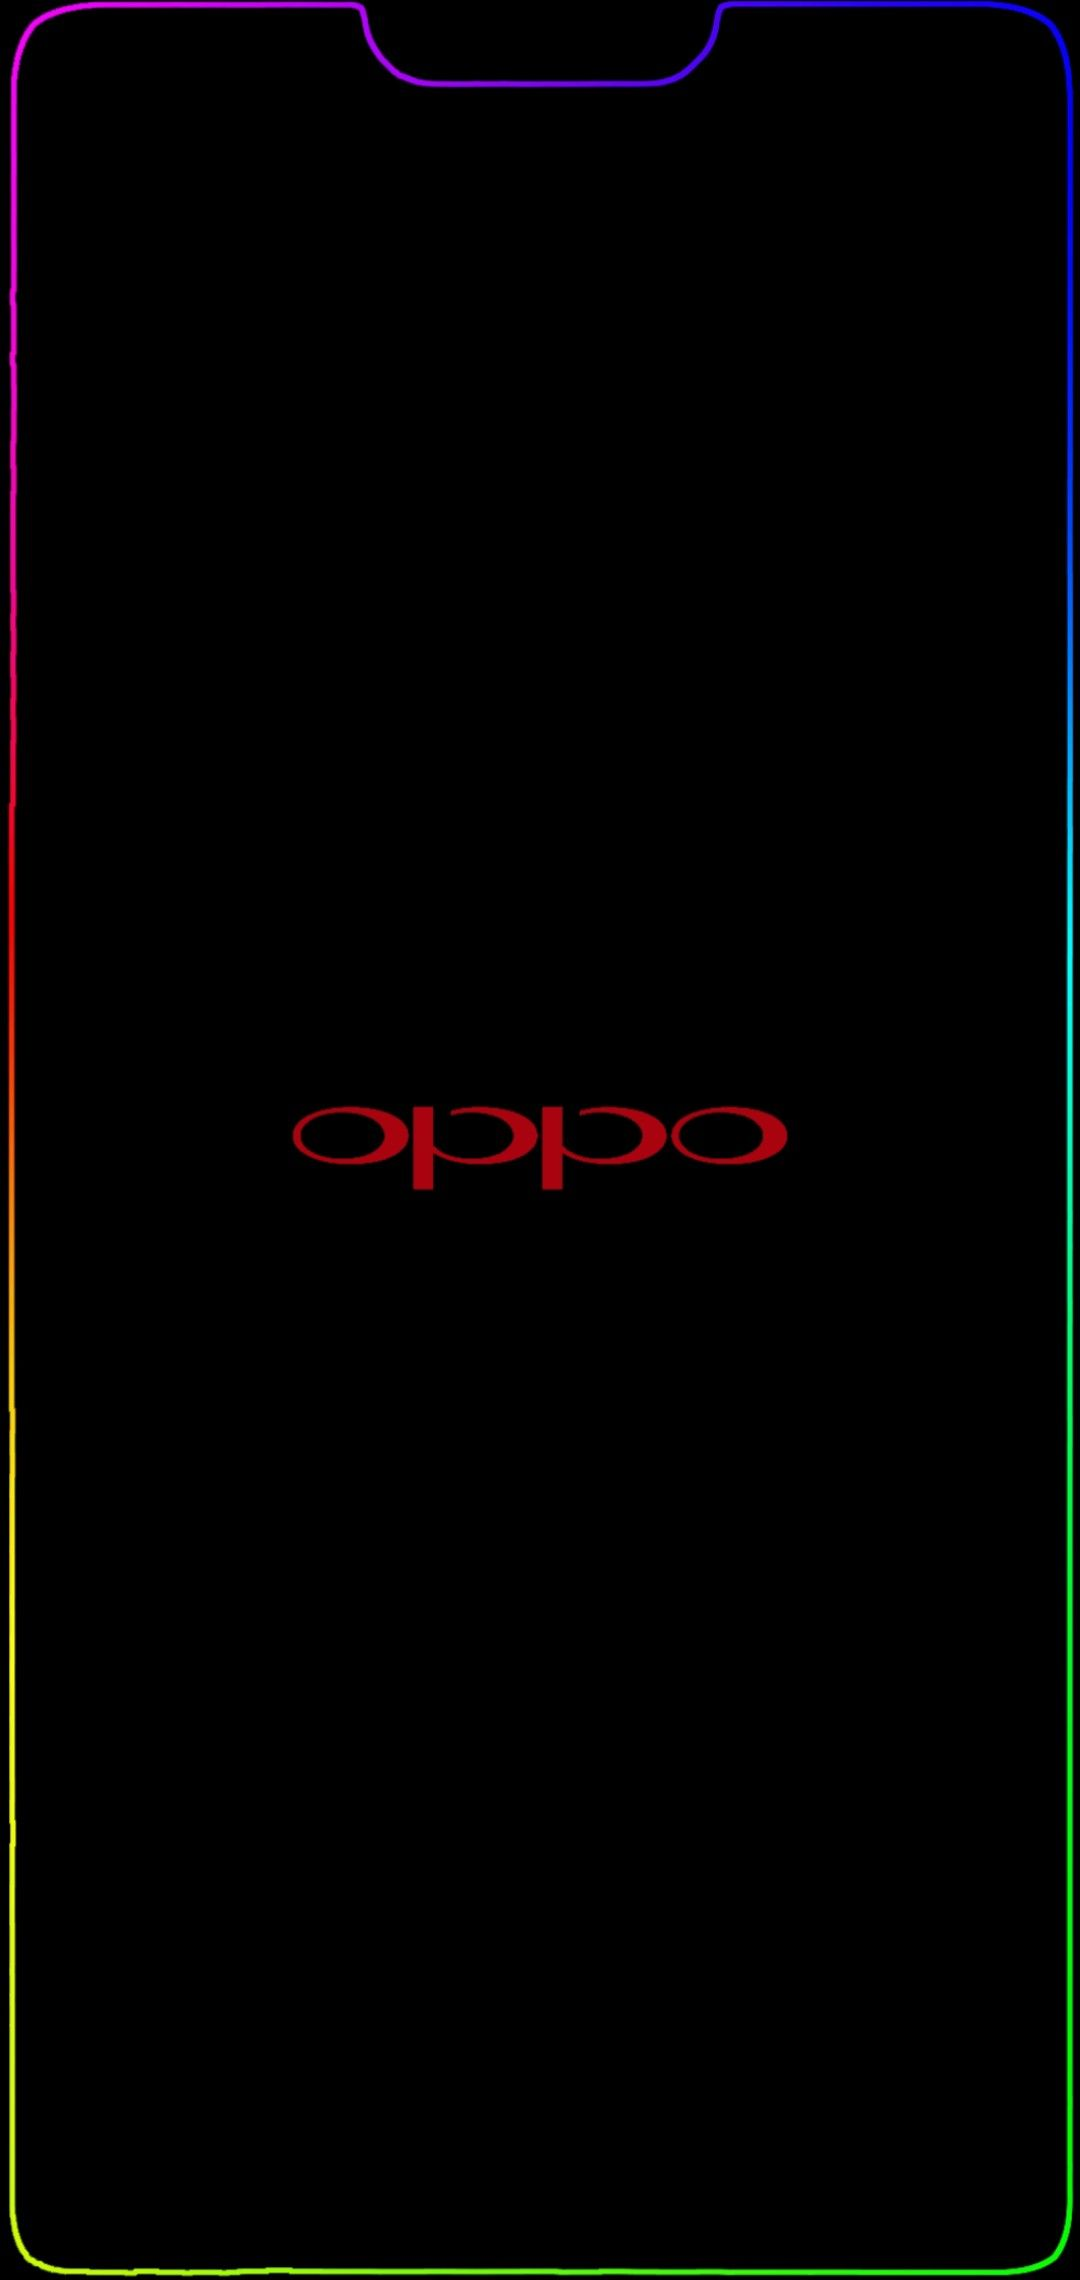 Oppo F7 Notch Border Light Red Oppo 1080x2280 Dengan Gambar